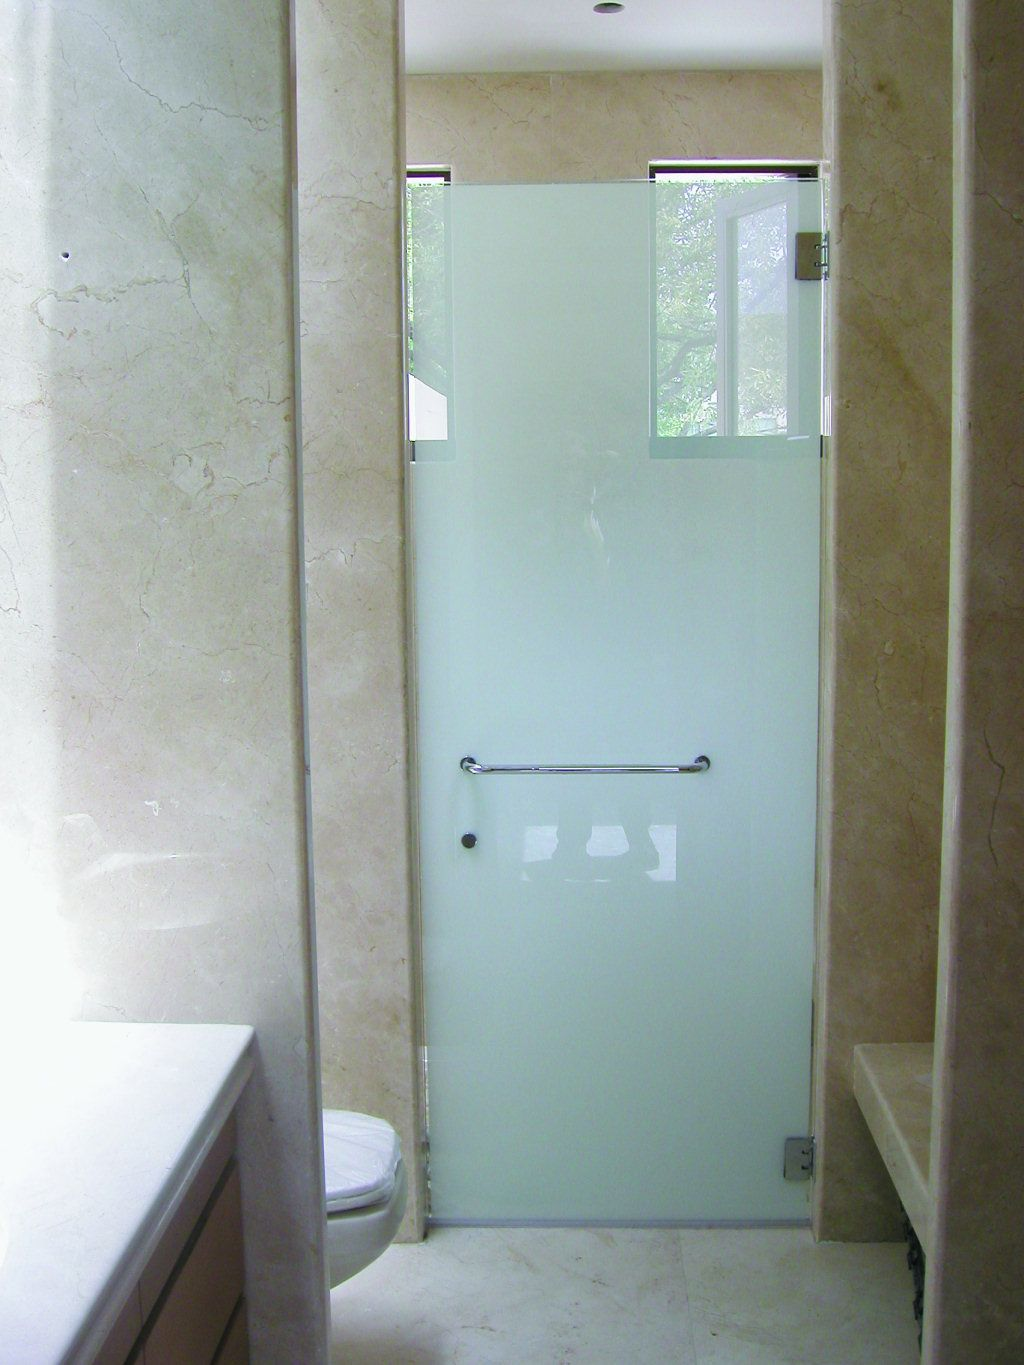 Bathroom shower doors frameless - Frameless Frosted Shower Doors Shower Doors Mirrored Closet Door Frameless Glass Enclosures